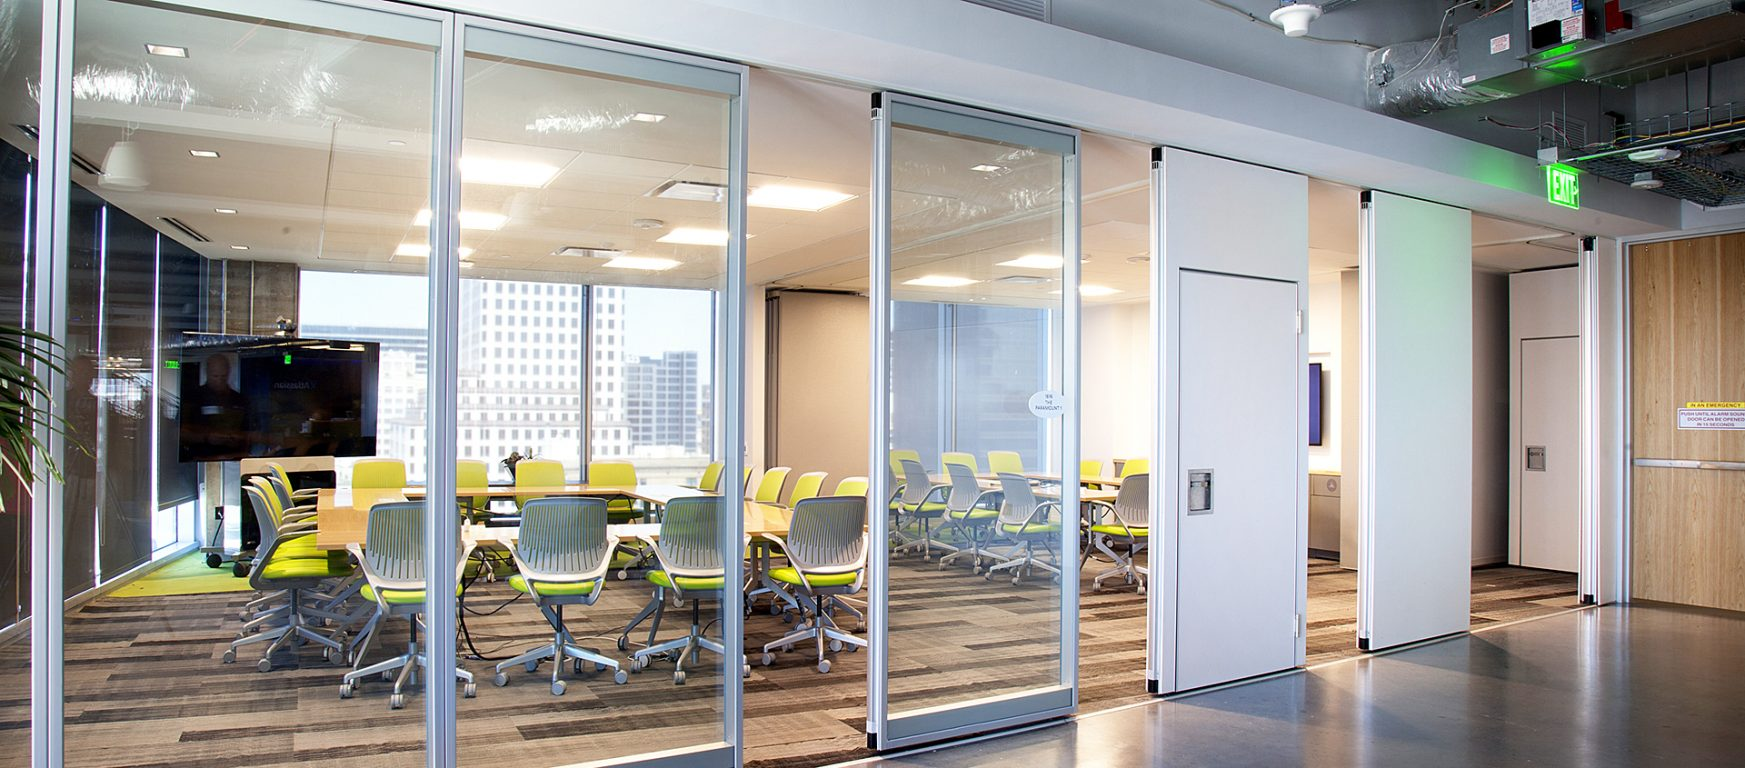 ACOUSTI CLEAR MOTORIZED GLASS WALLS Operable Partitions and Glass